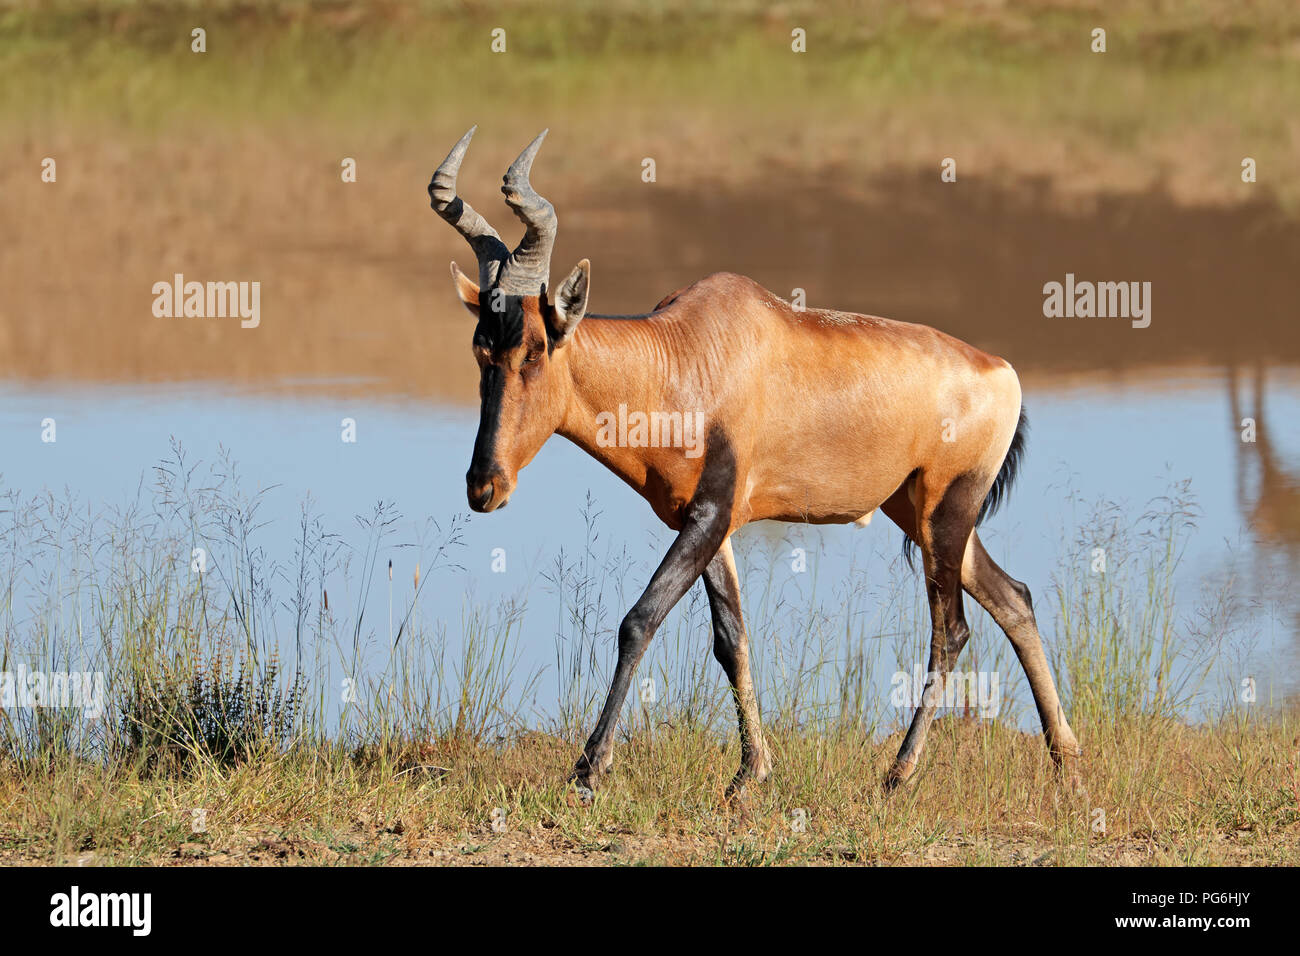 A red hartebeest antelope (Alcelaphus buselaphus) in natural habitat, South Africa - Stock Image